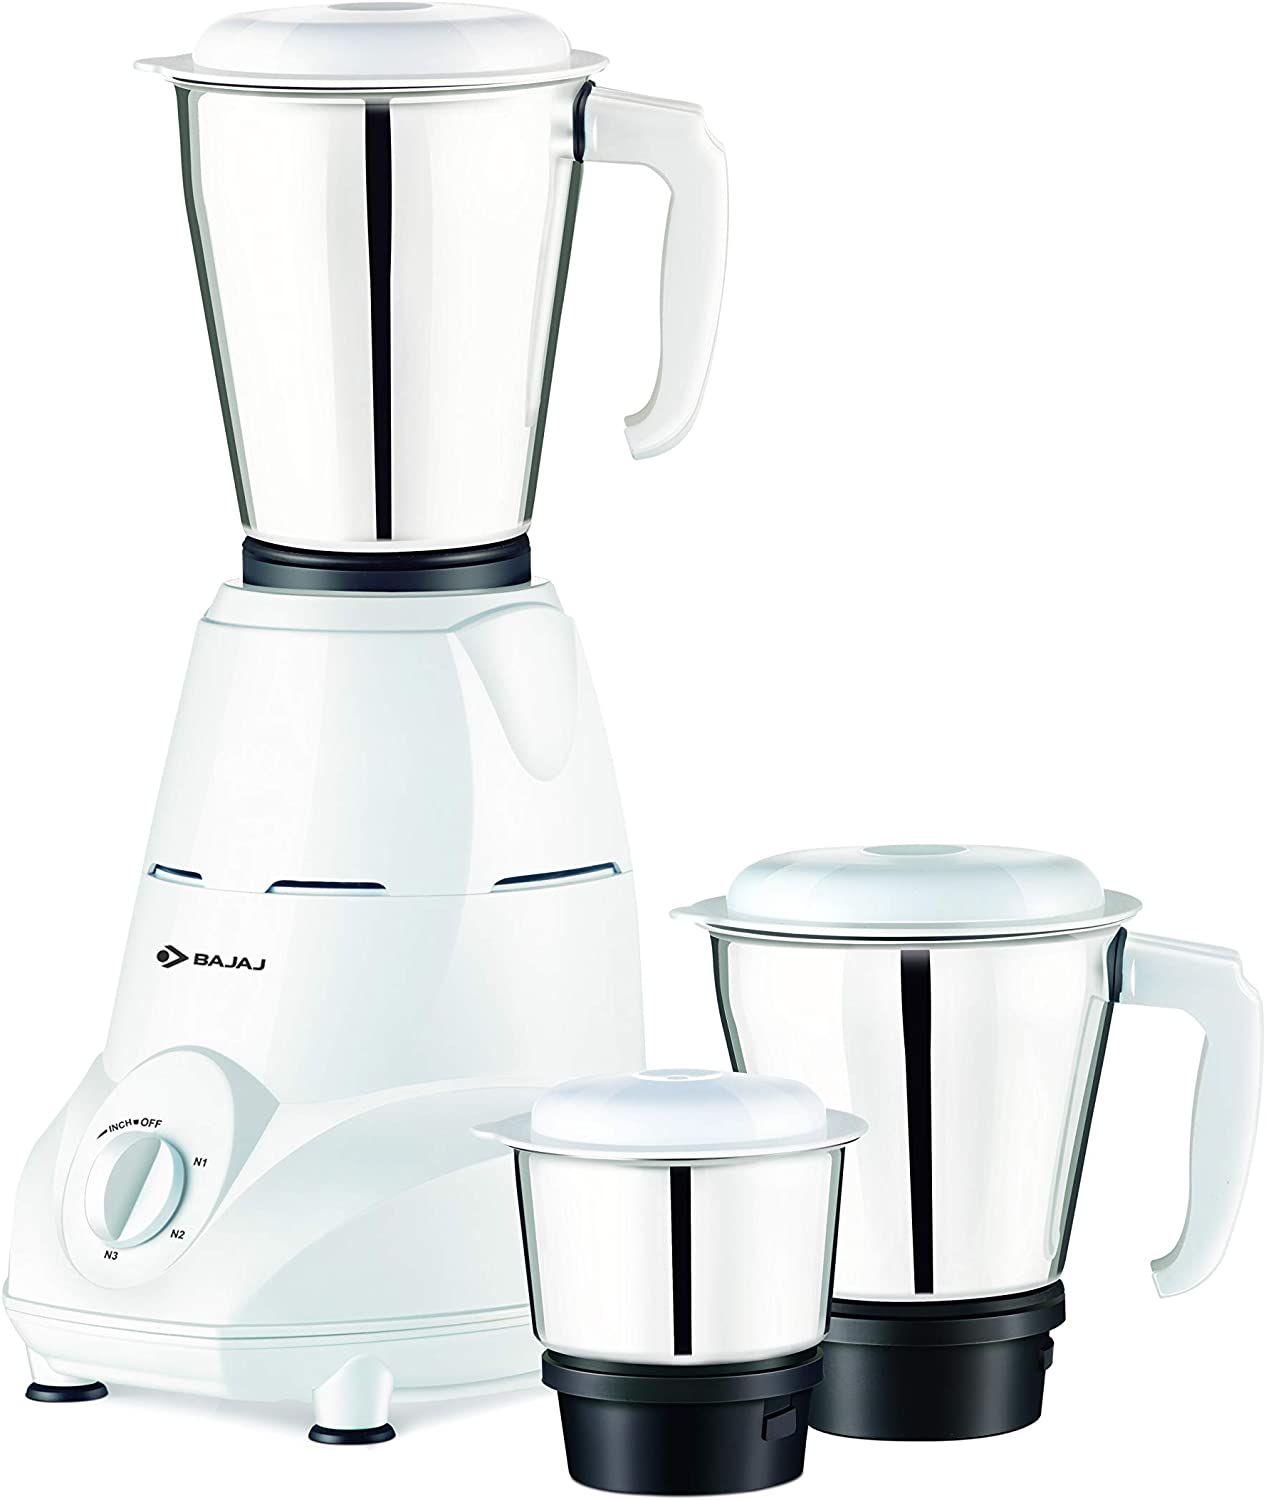 Top 10 Mixer Grinder for Indian Cooking in USA for 2021